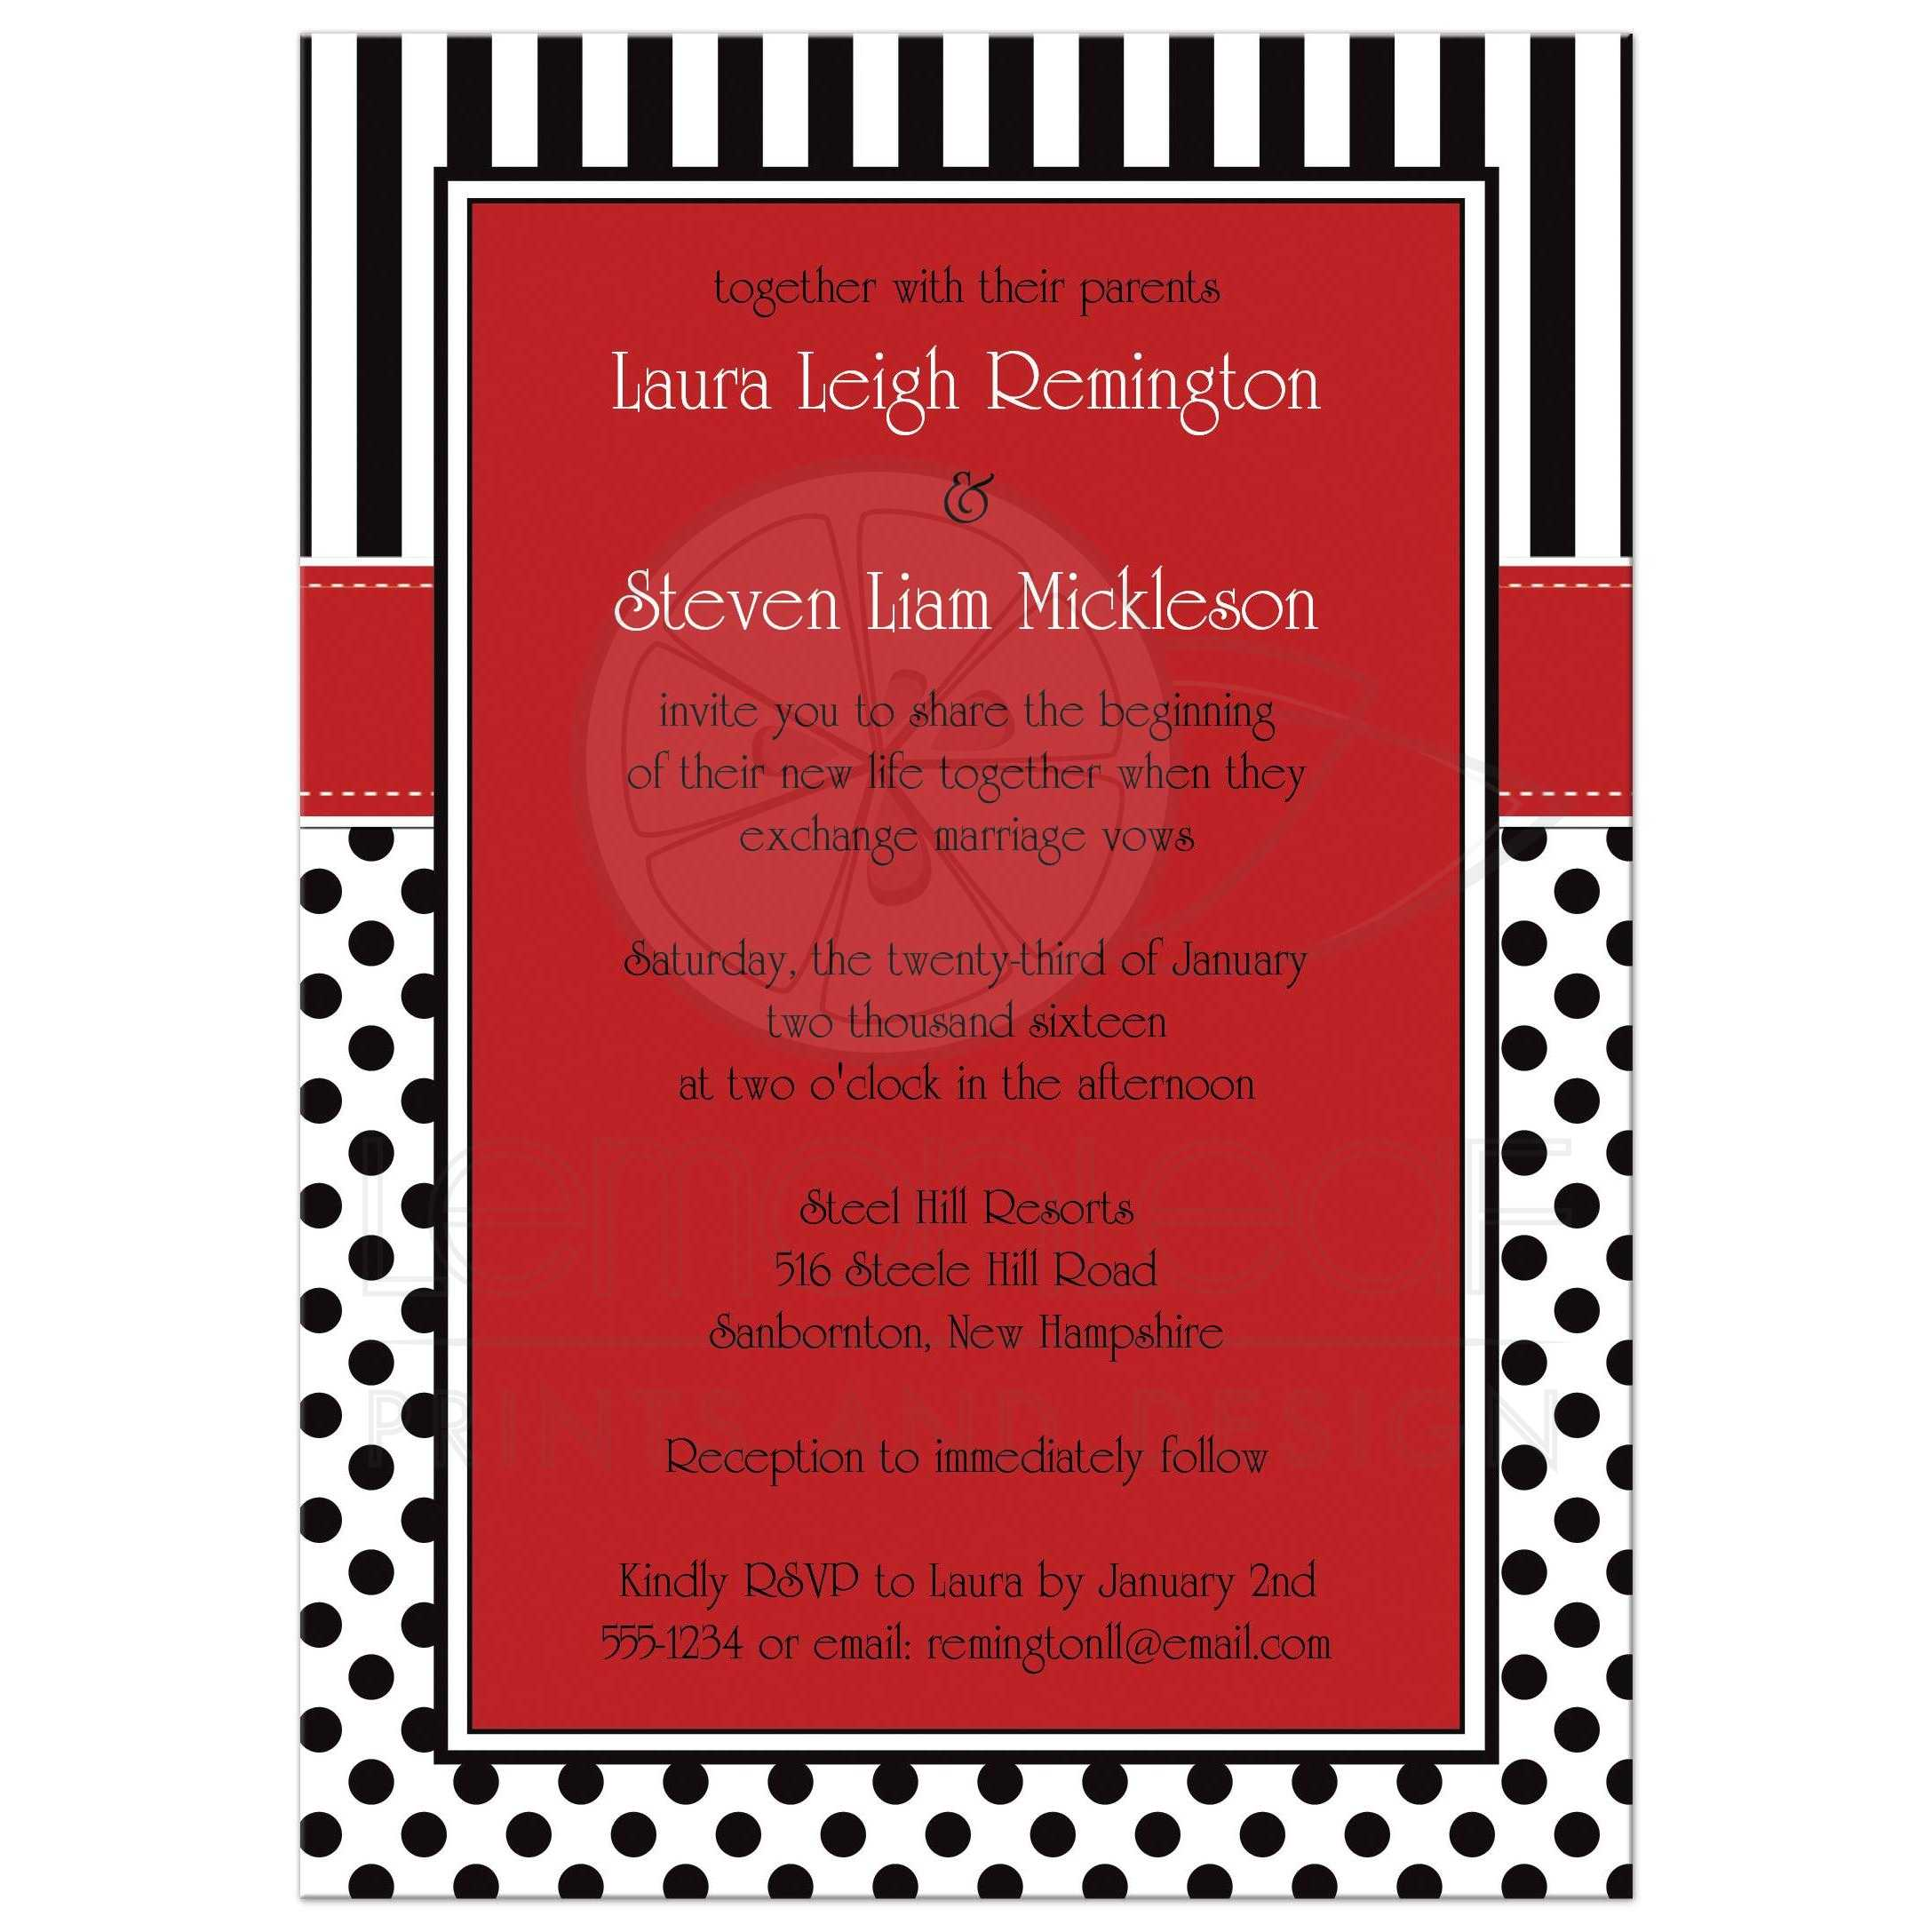 Wedding Invitation Black White Red Polka Dots and Stripes